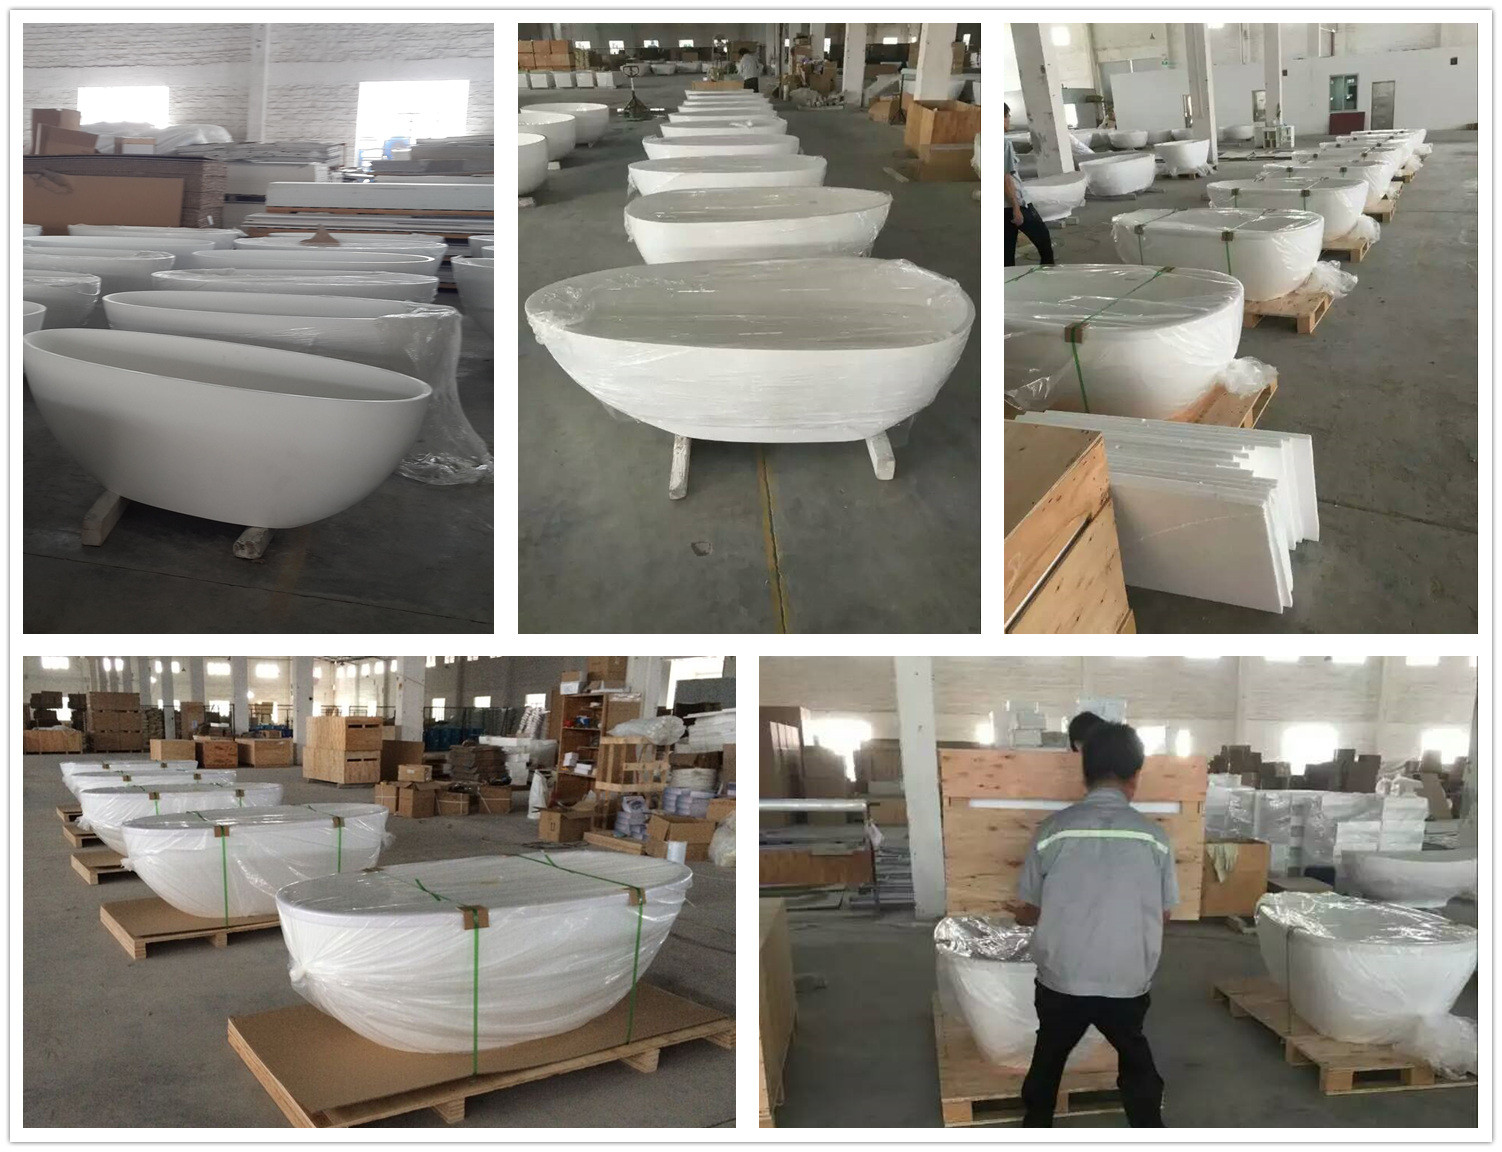 Bellissimo-Curve Edge Shaped Freestanding Solid Surface Composite Resin-9